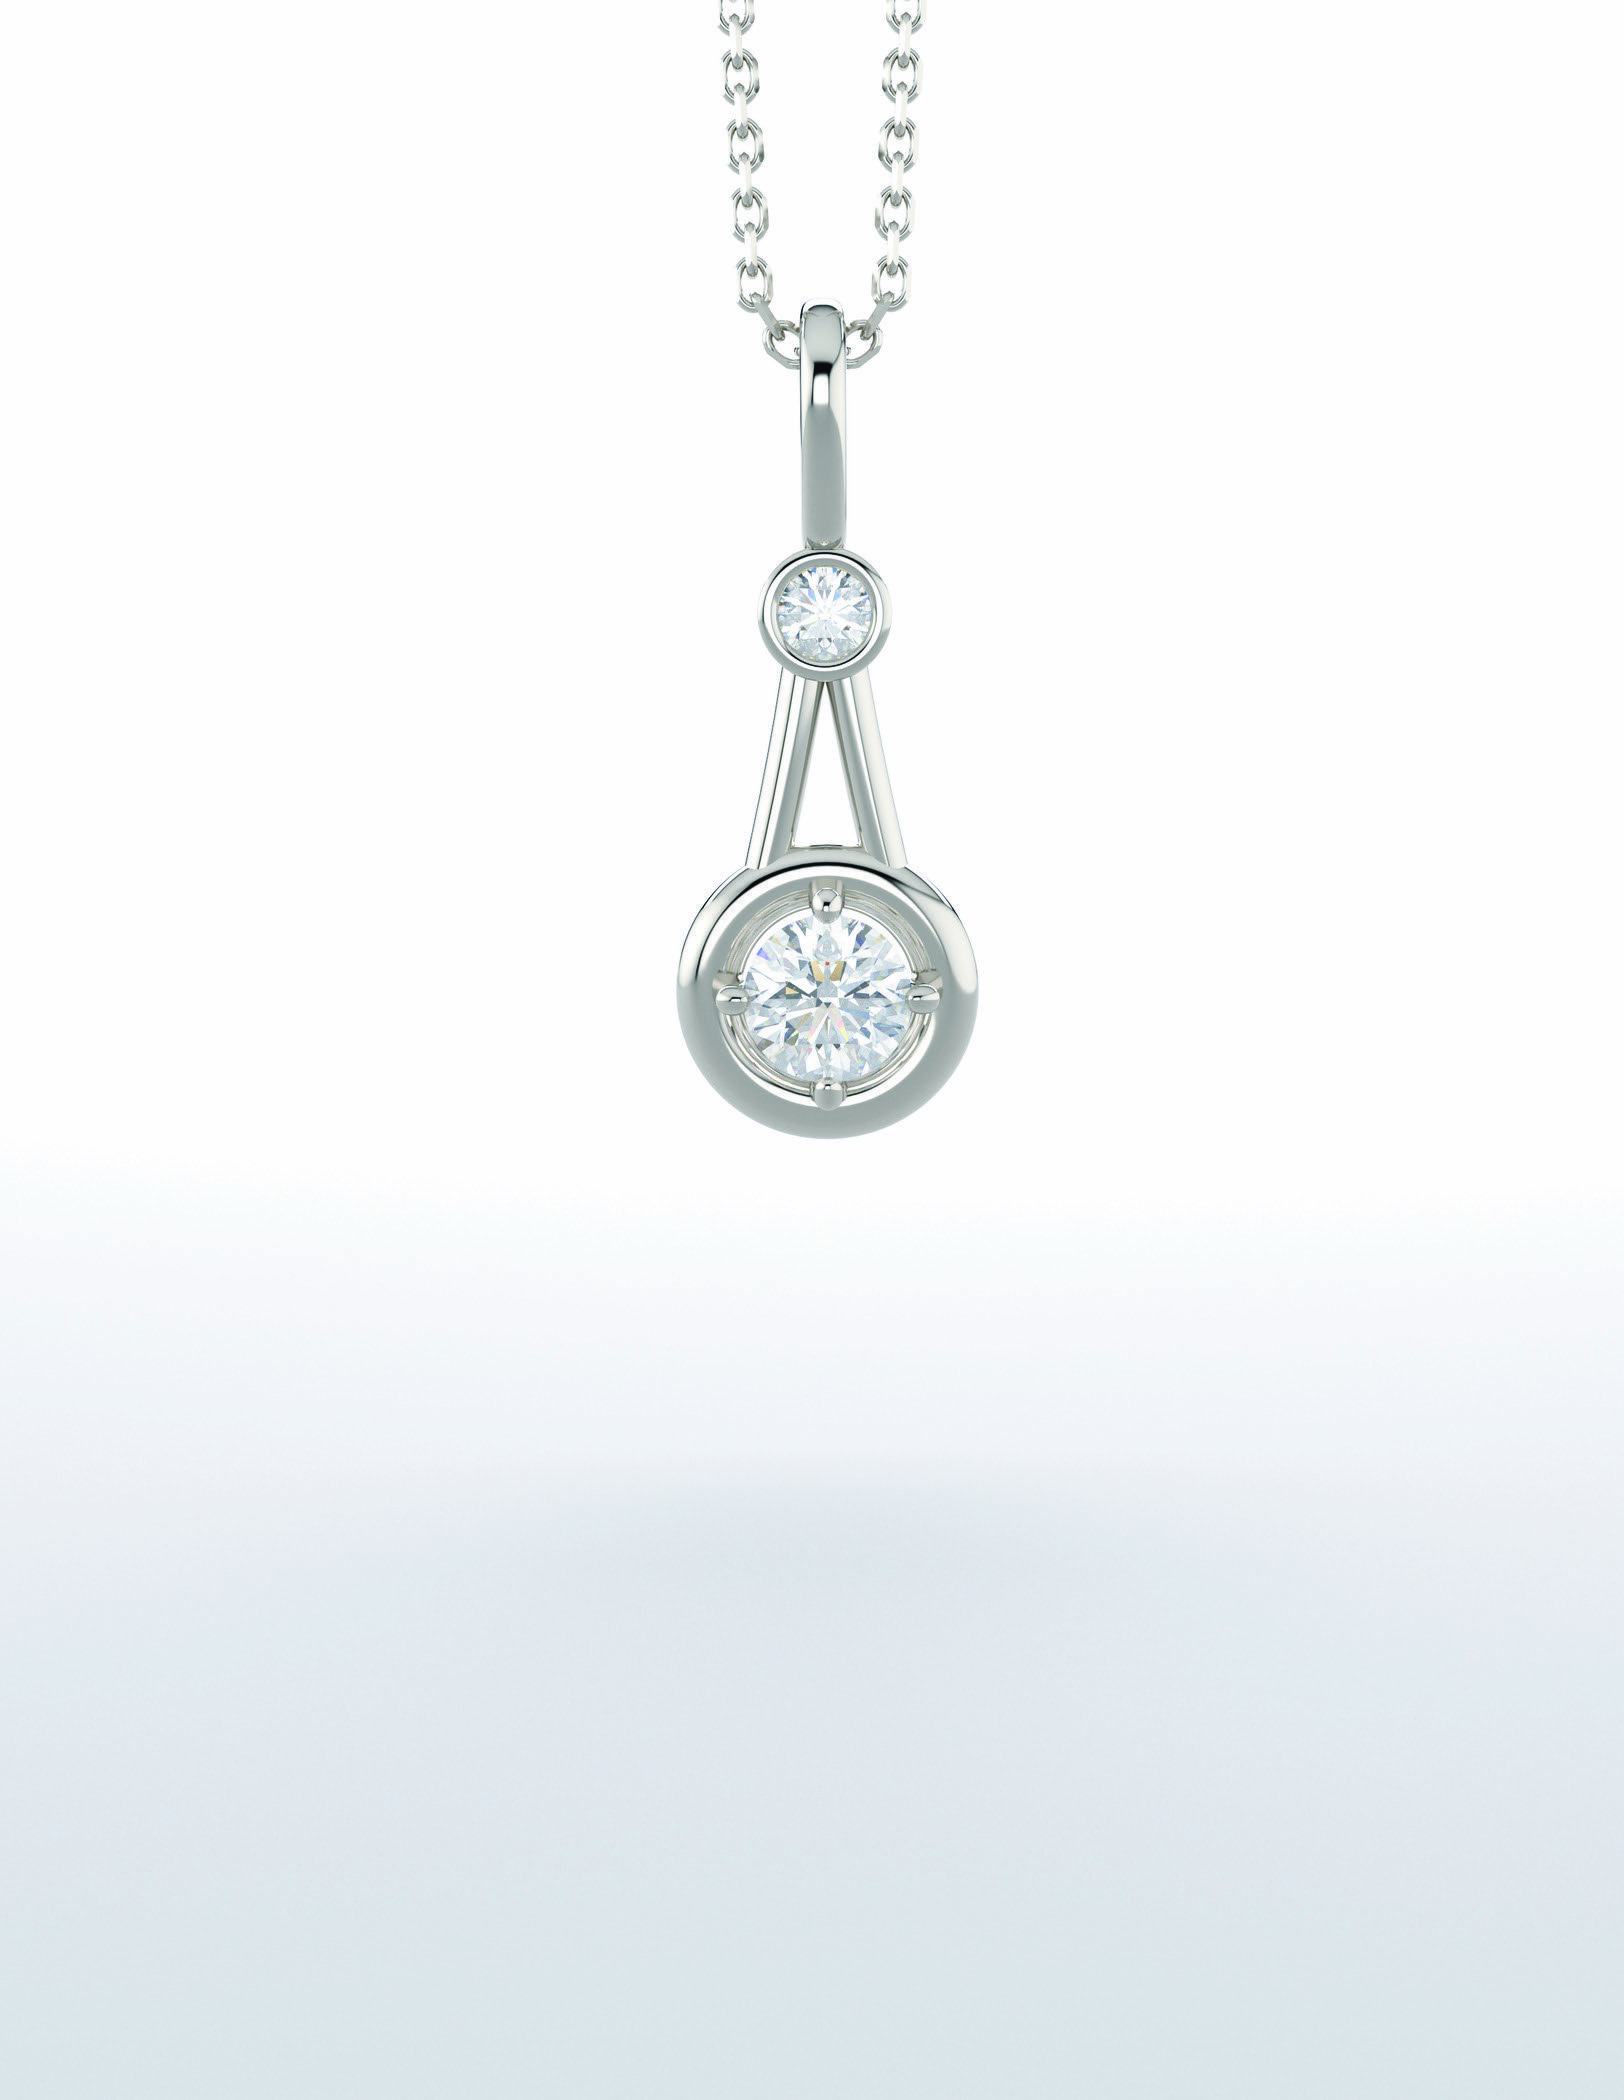 Diamond Pendant gifts Bezel set fashion